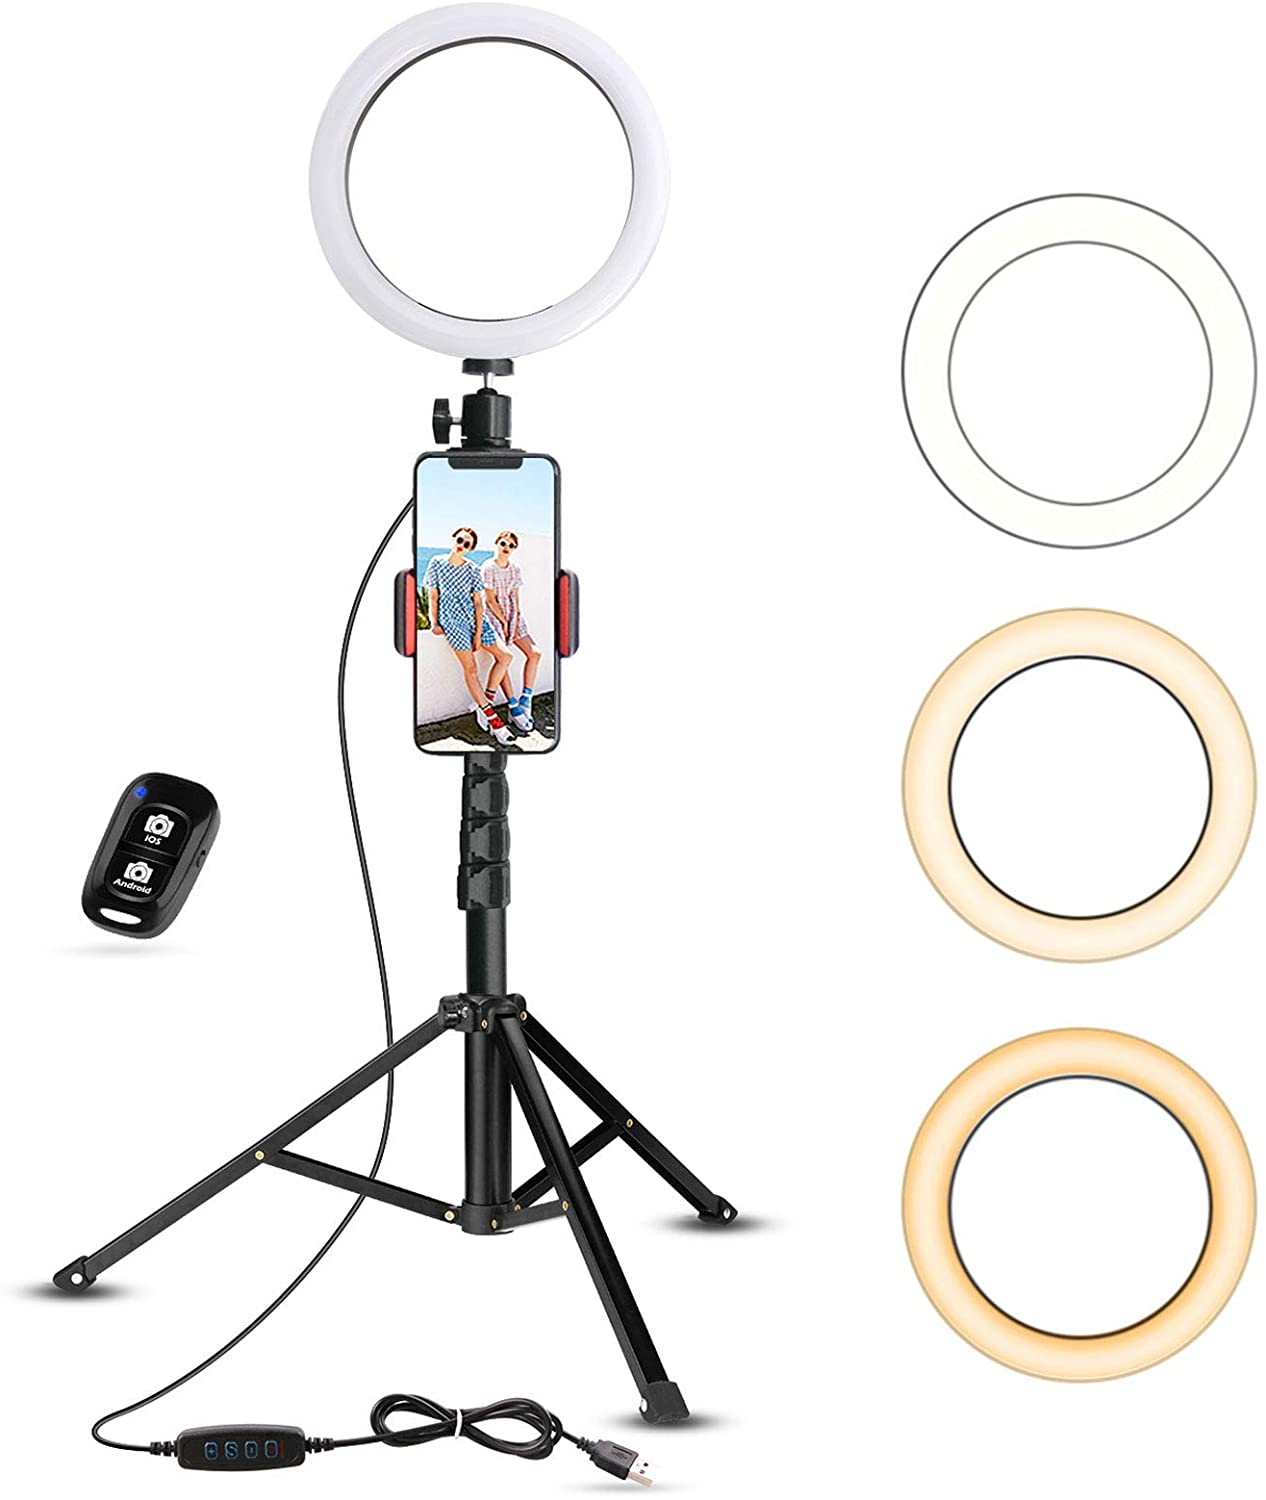 Selfie Ring Light with Tripod Stand & Cell Phone Holder for Live Stream/Makeup, UBeesize Mini Led Camera Ringlight for YouTube Video/Photography